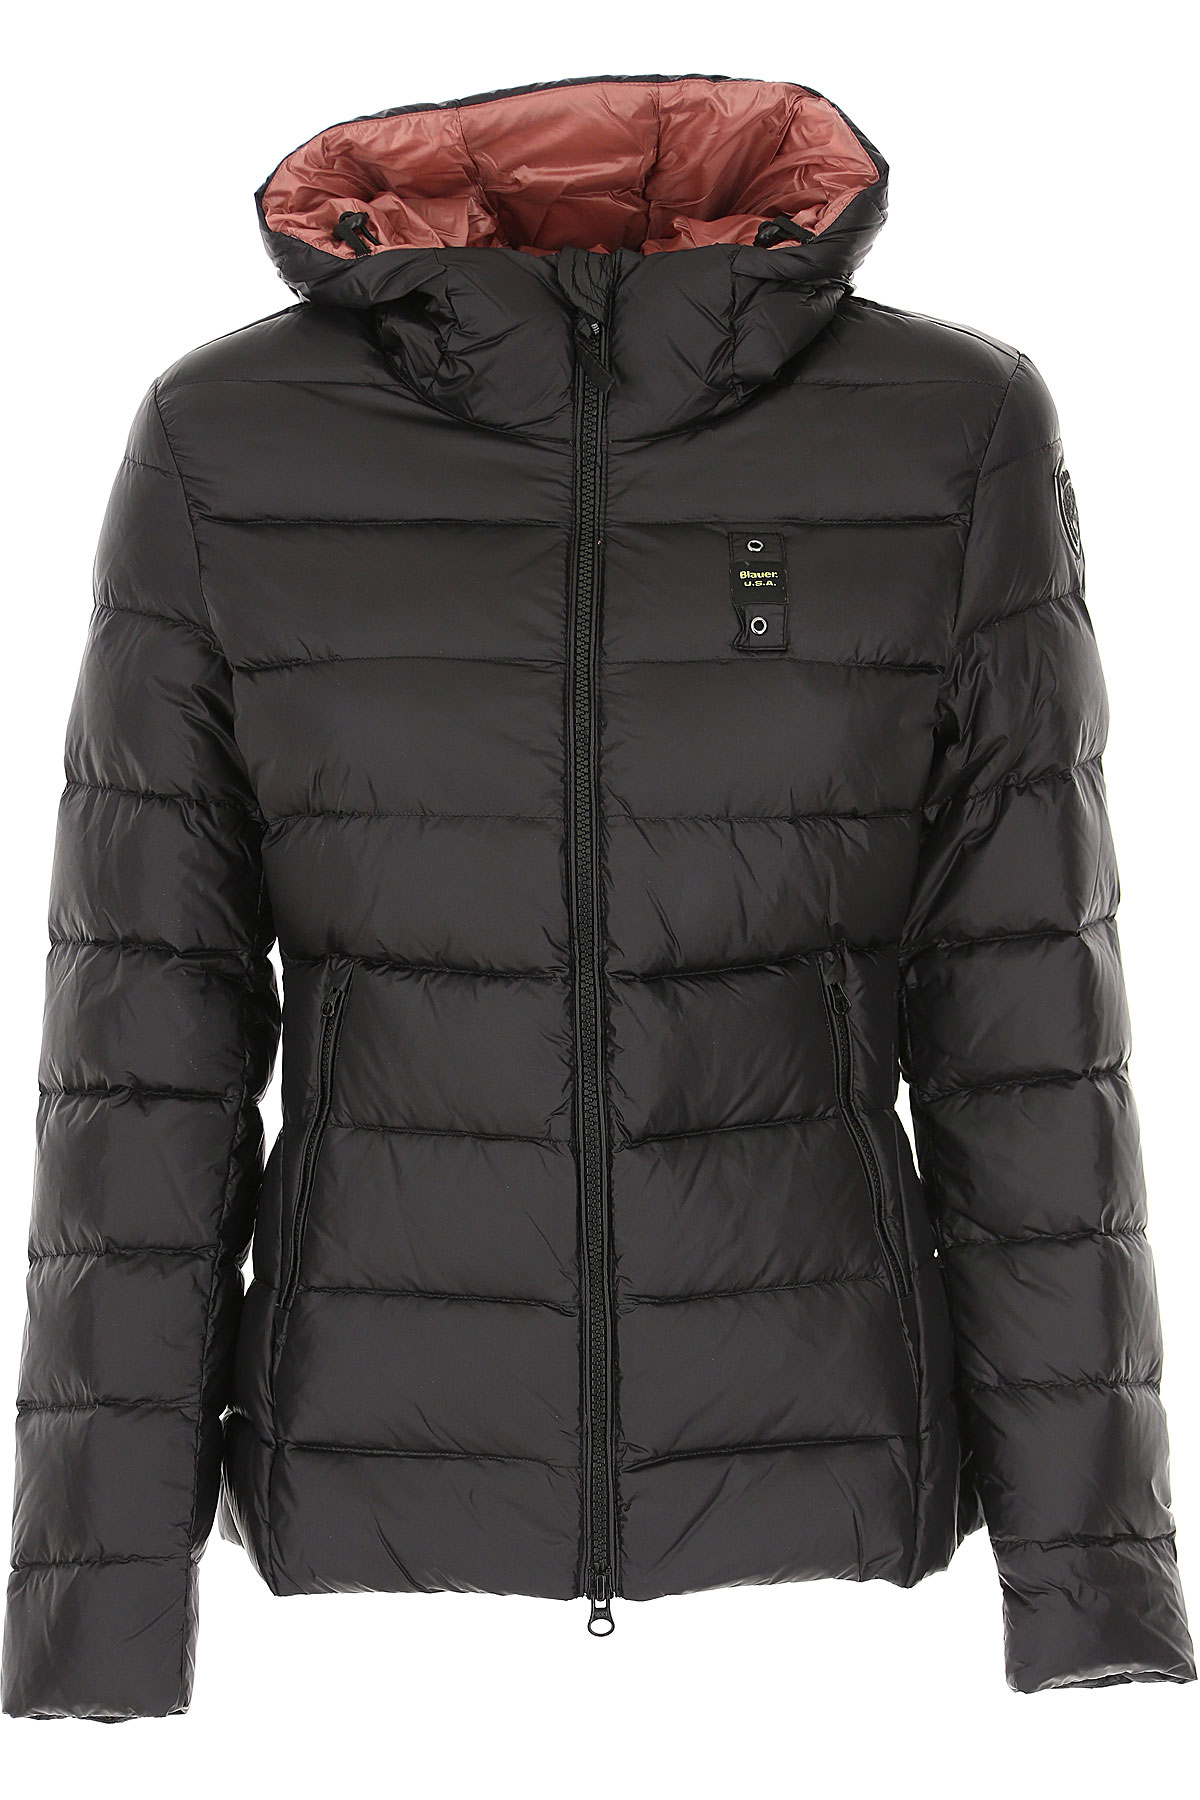 Blauer Down Jacket for Women, Puffer Ski Jacket On Sale, Black, polyester, 2019, 10 2 6 8